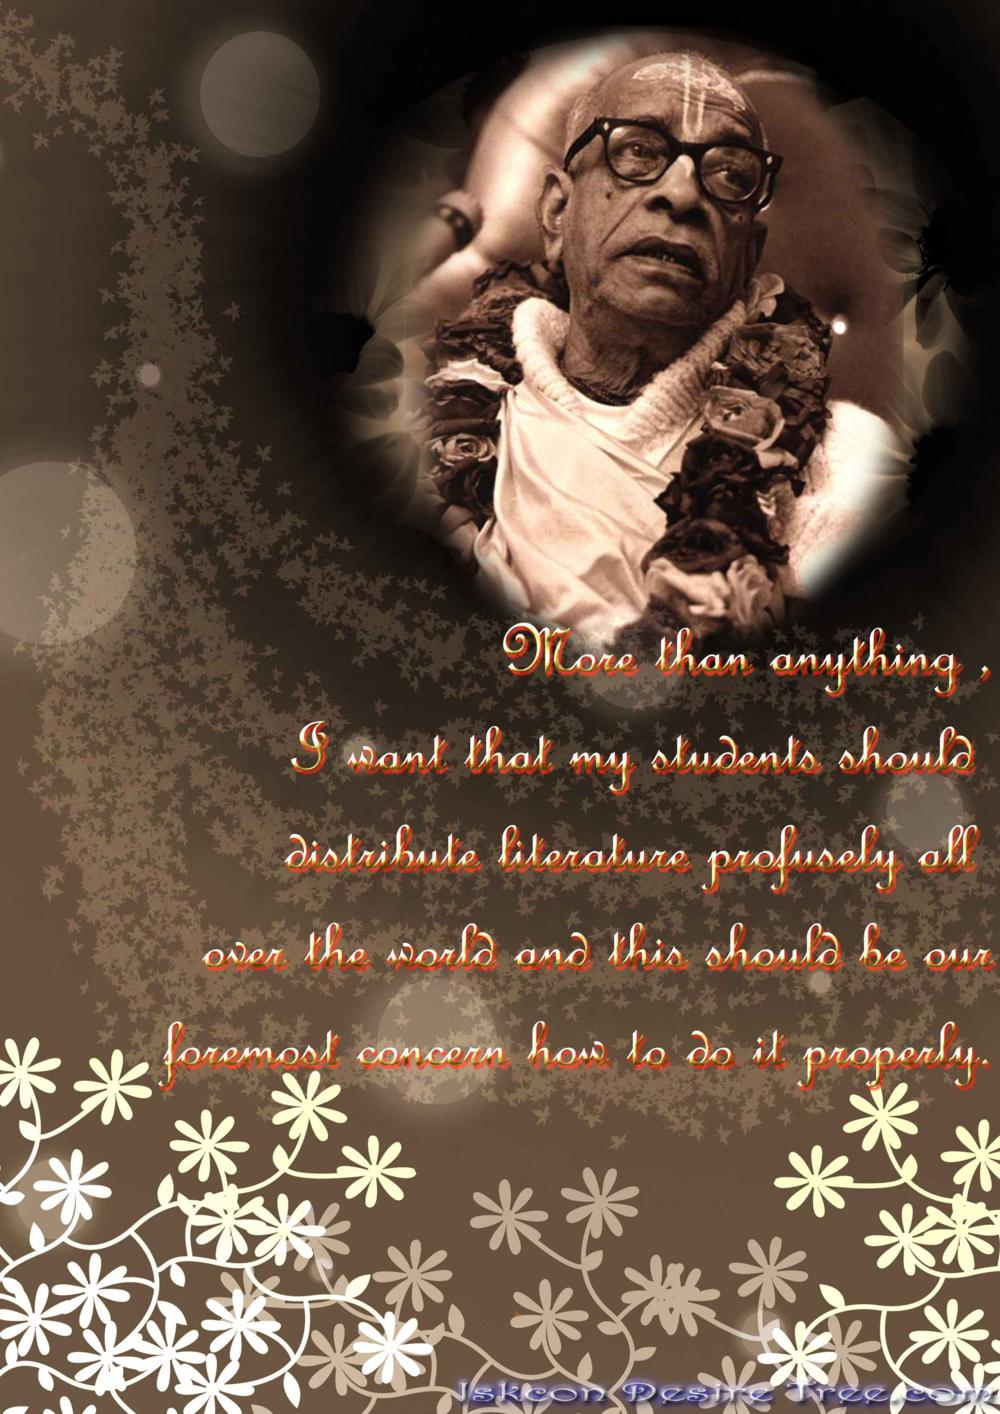 Quotes by Srila Prabhupada on Profusley Distributing Vedic Literature